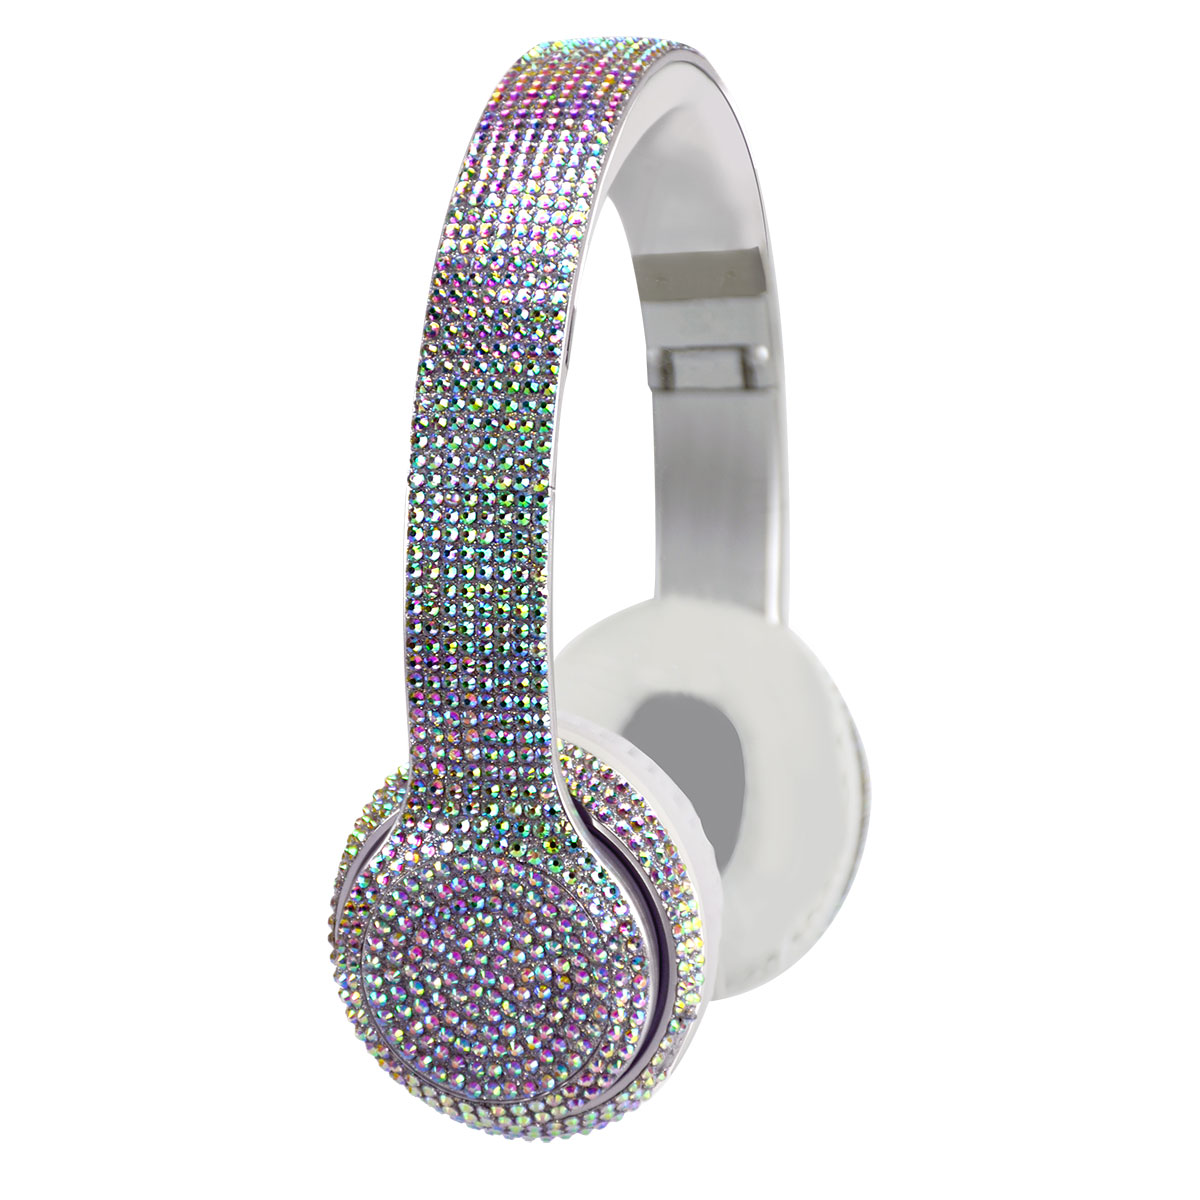 Wireless Express Bluetooth Iridescent Bling Headphones